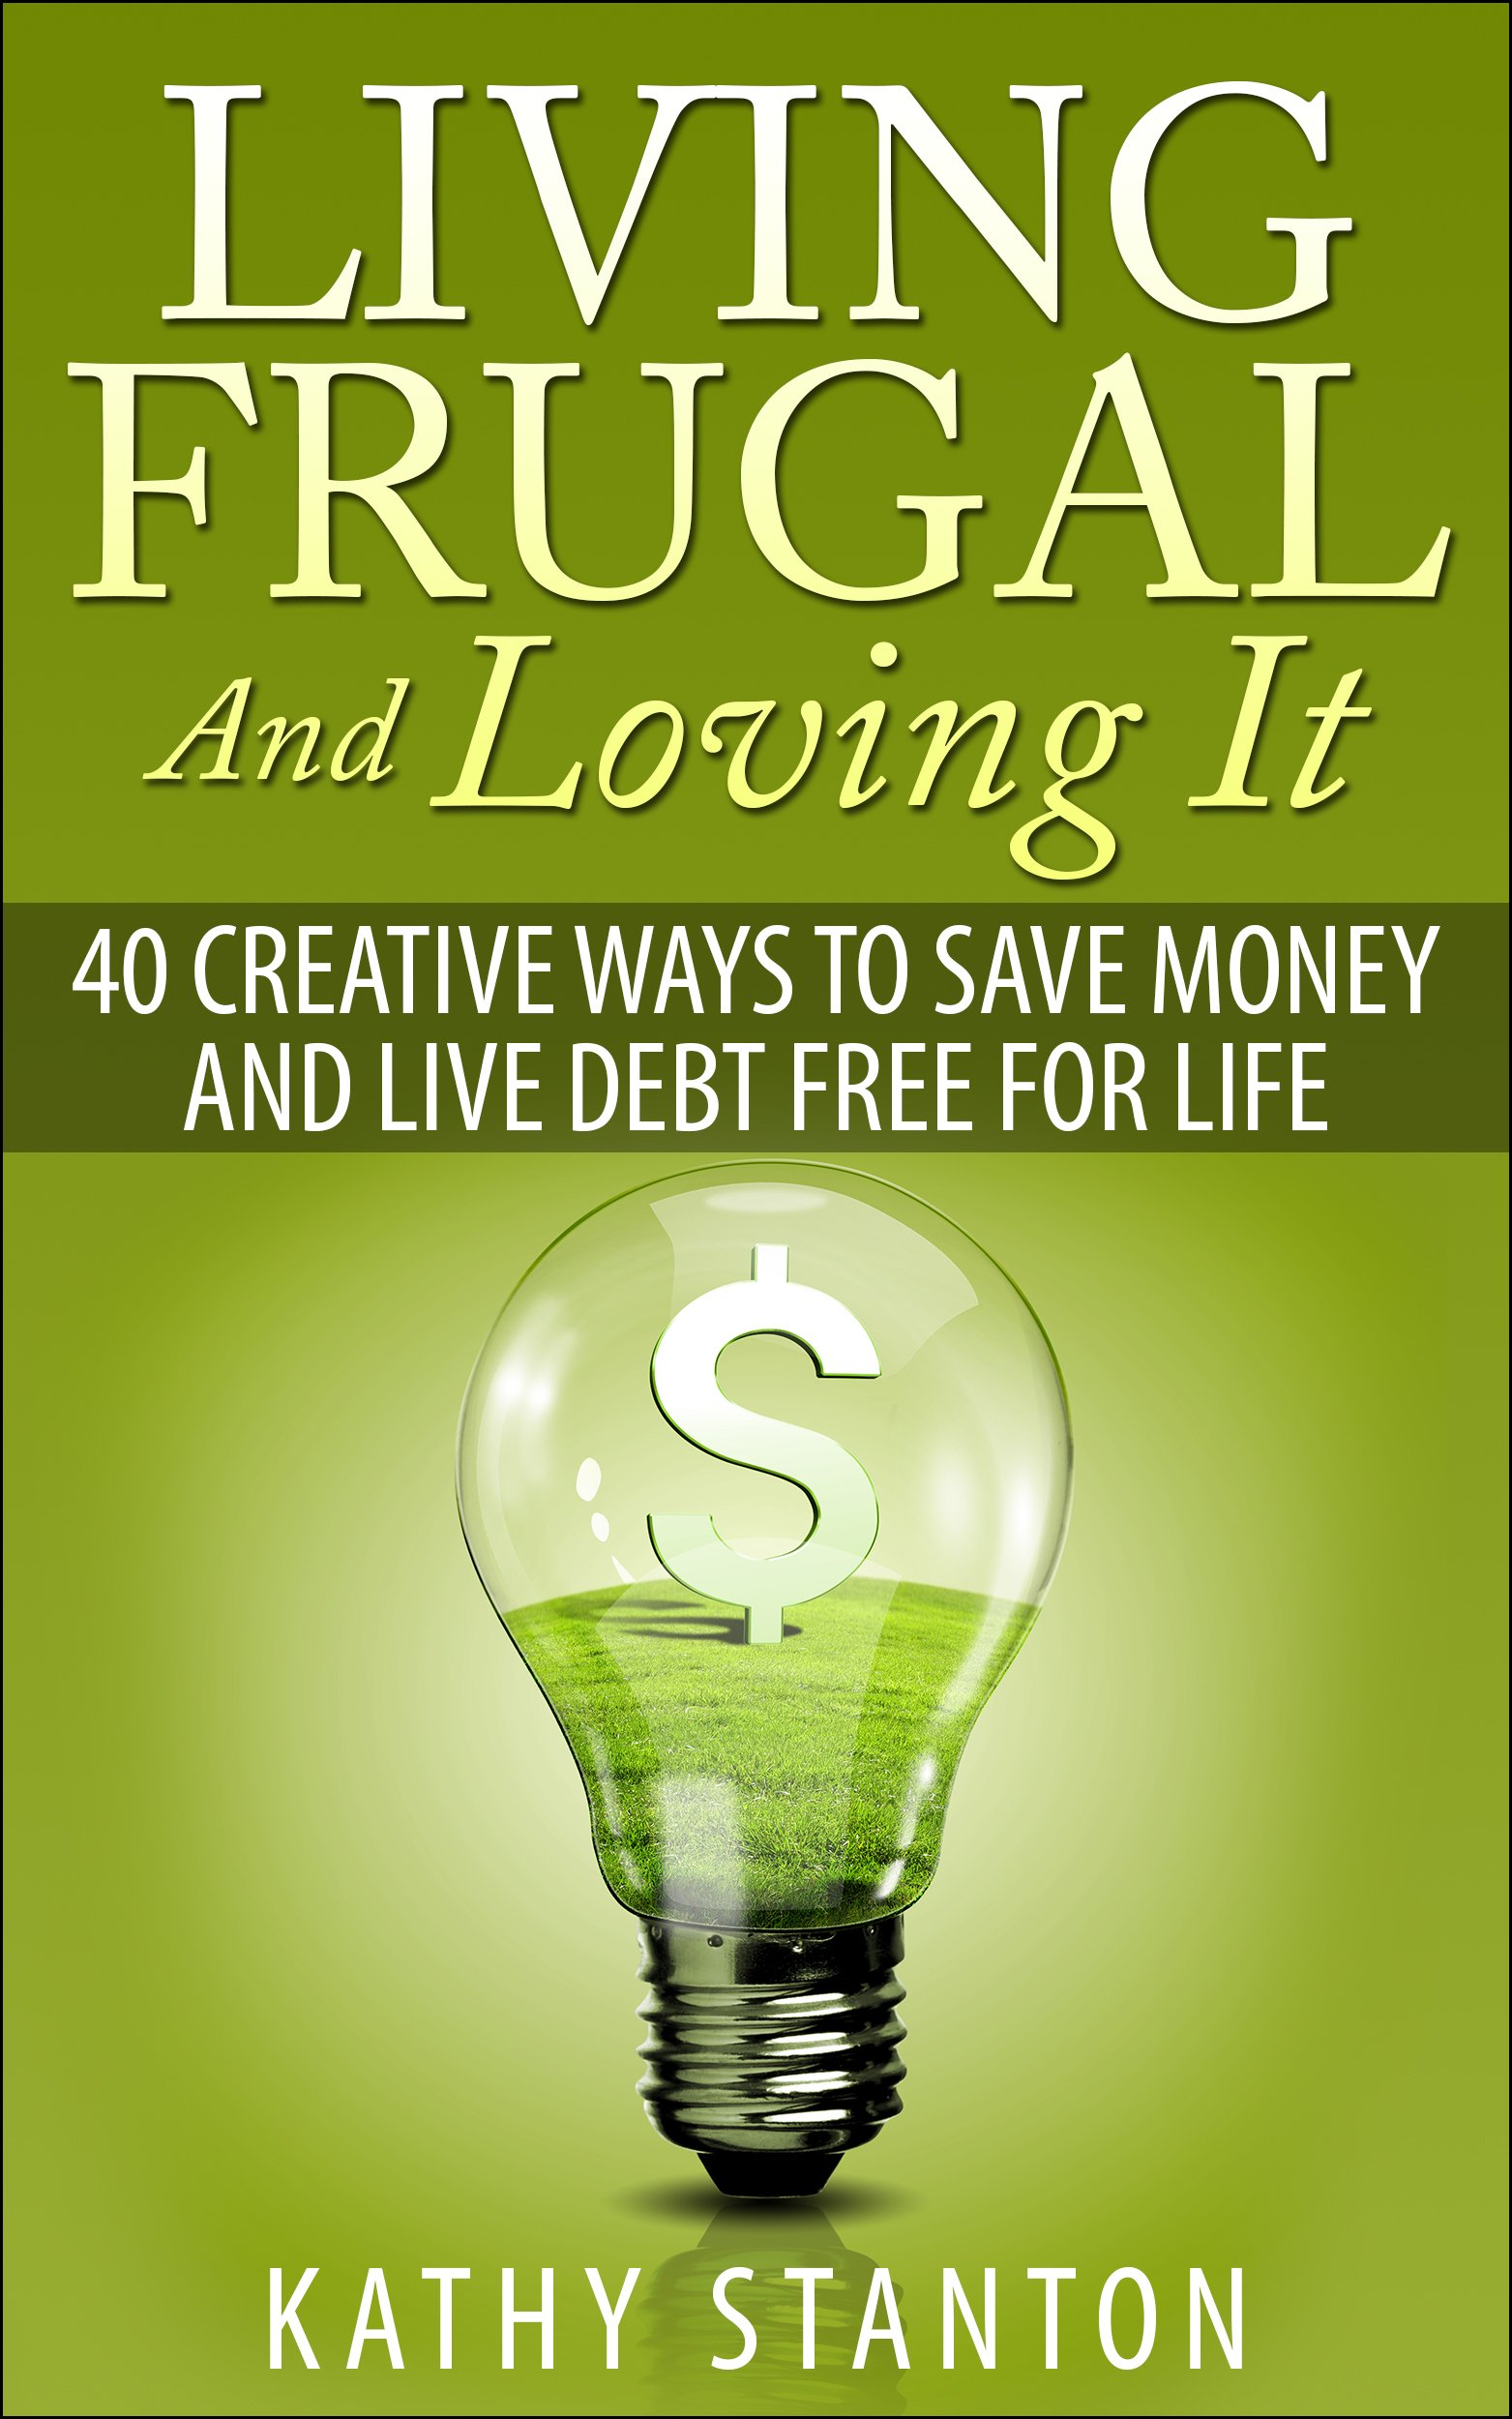 Living Frugal And Loving It: 40 Creative Ways To Save Money And Live Debt Free For Life (Simple Living Book 2) (English Edition)